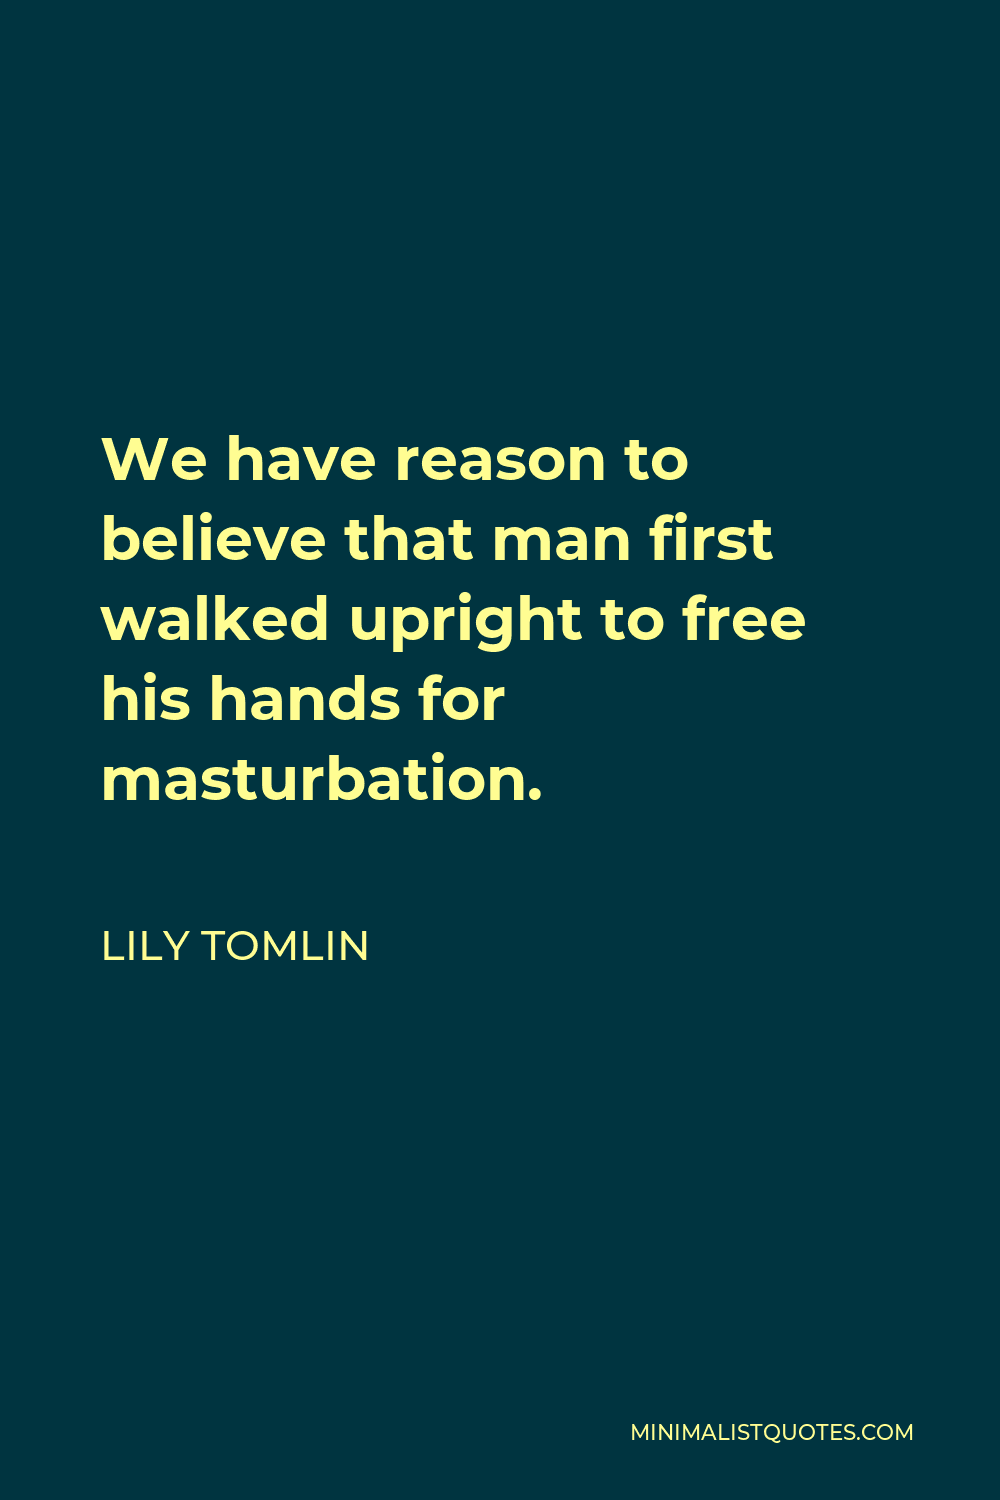 Lily Tomlin Quote - We have reason to believe that man first walked upright to free his hands for masturbation.